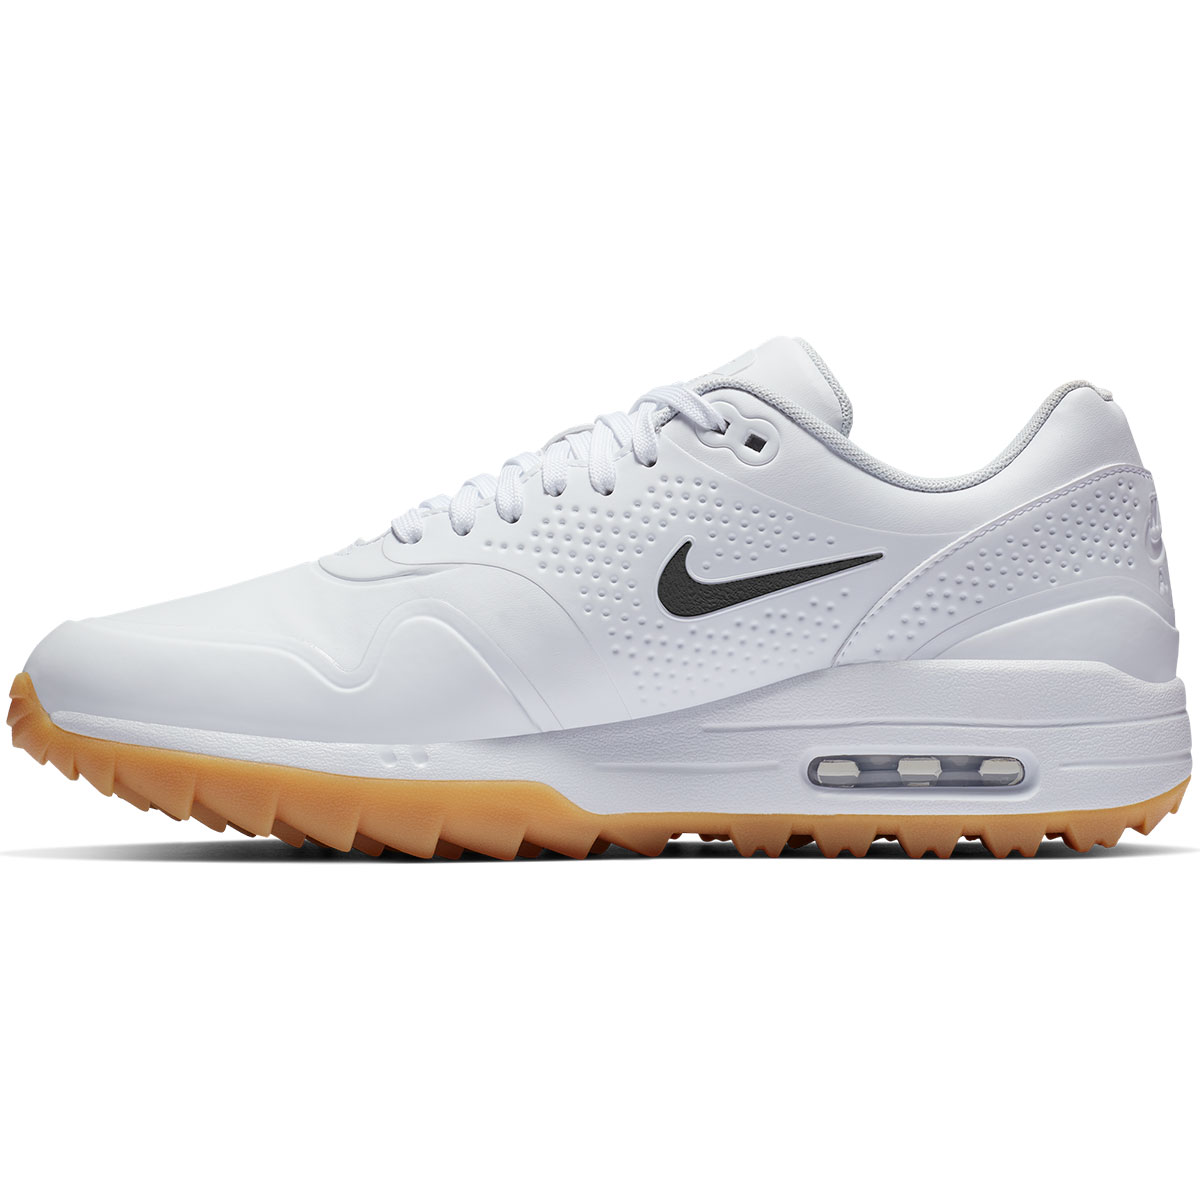 71ef3126a743 Nike Air Max 1G Shoes from american golf